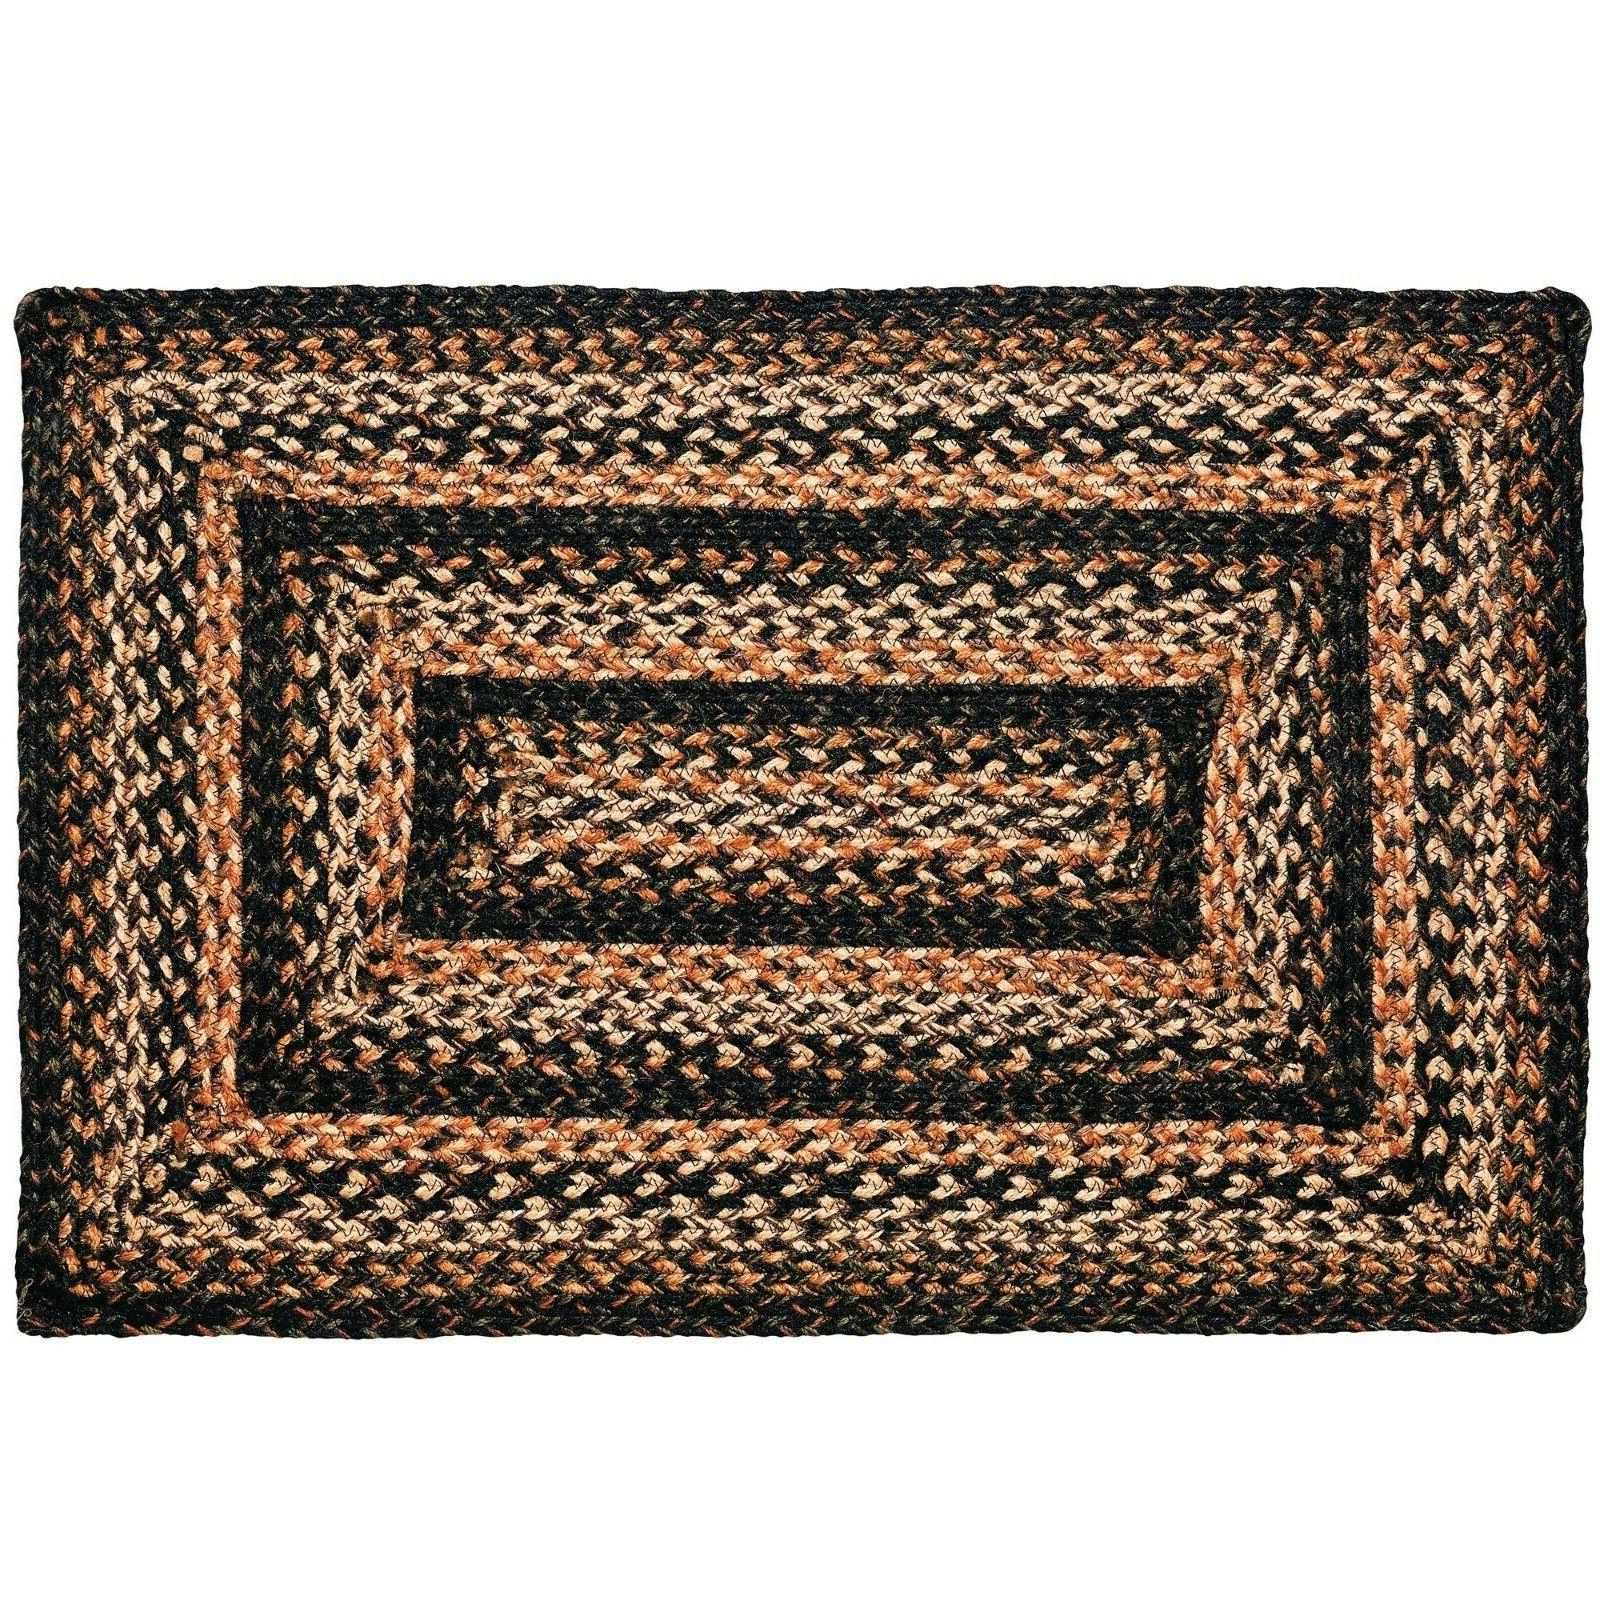 "IHF Home Decor 22"" x 72"" Black Forest Rectangle Jute Braided"